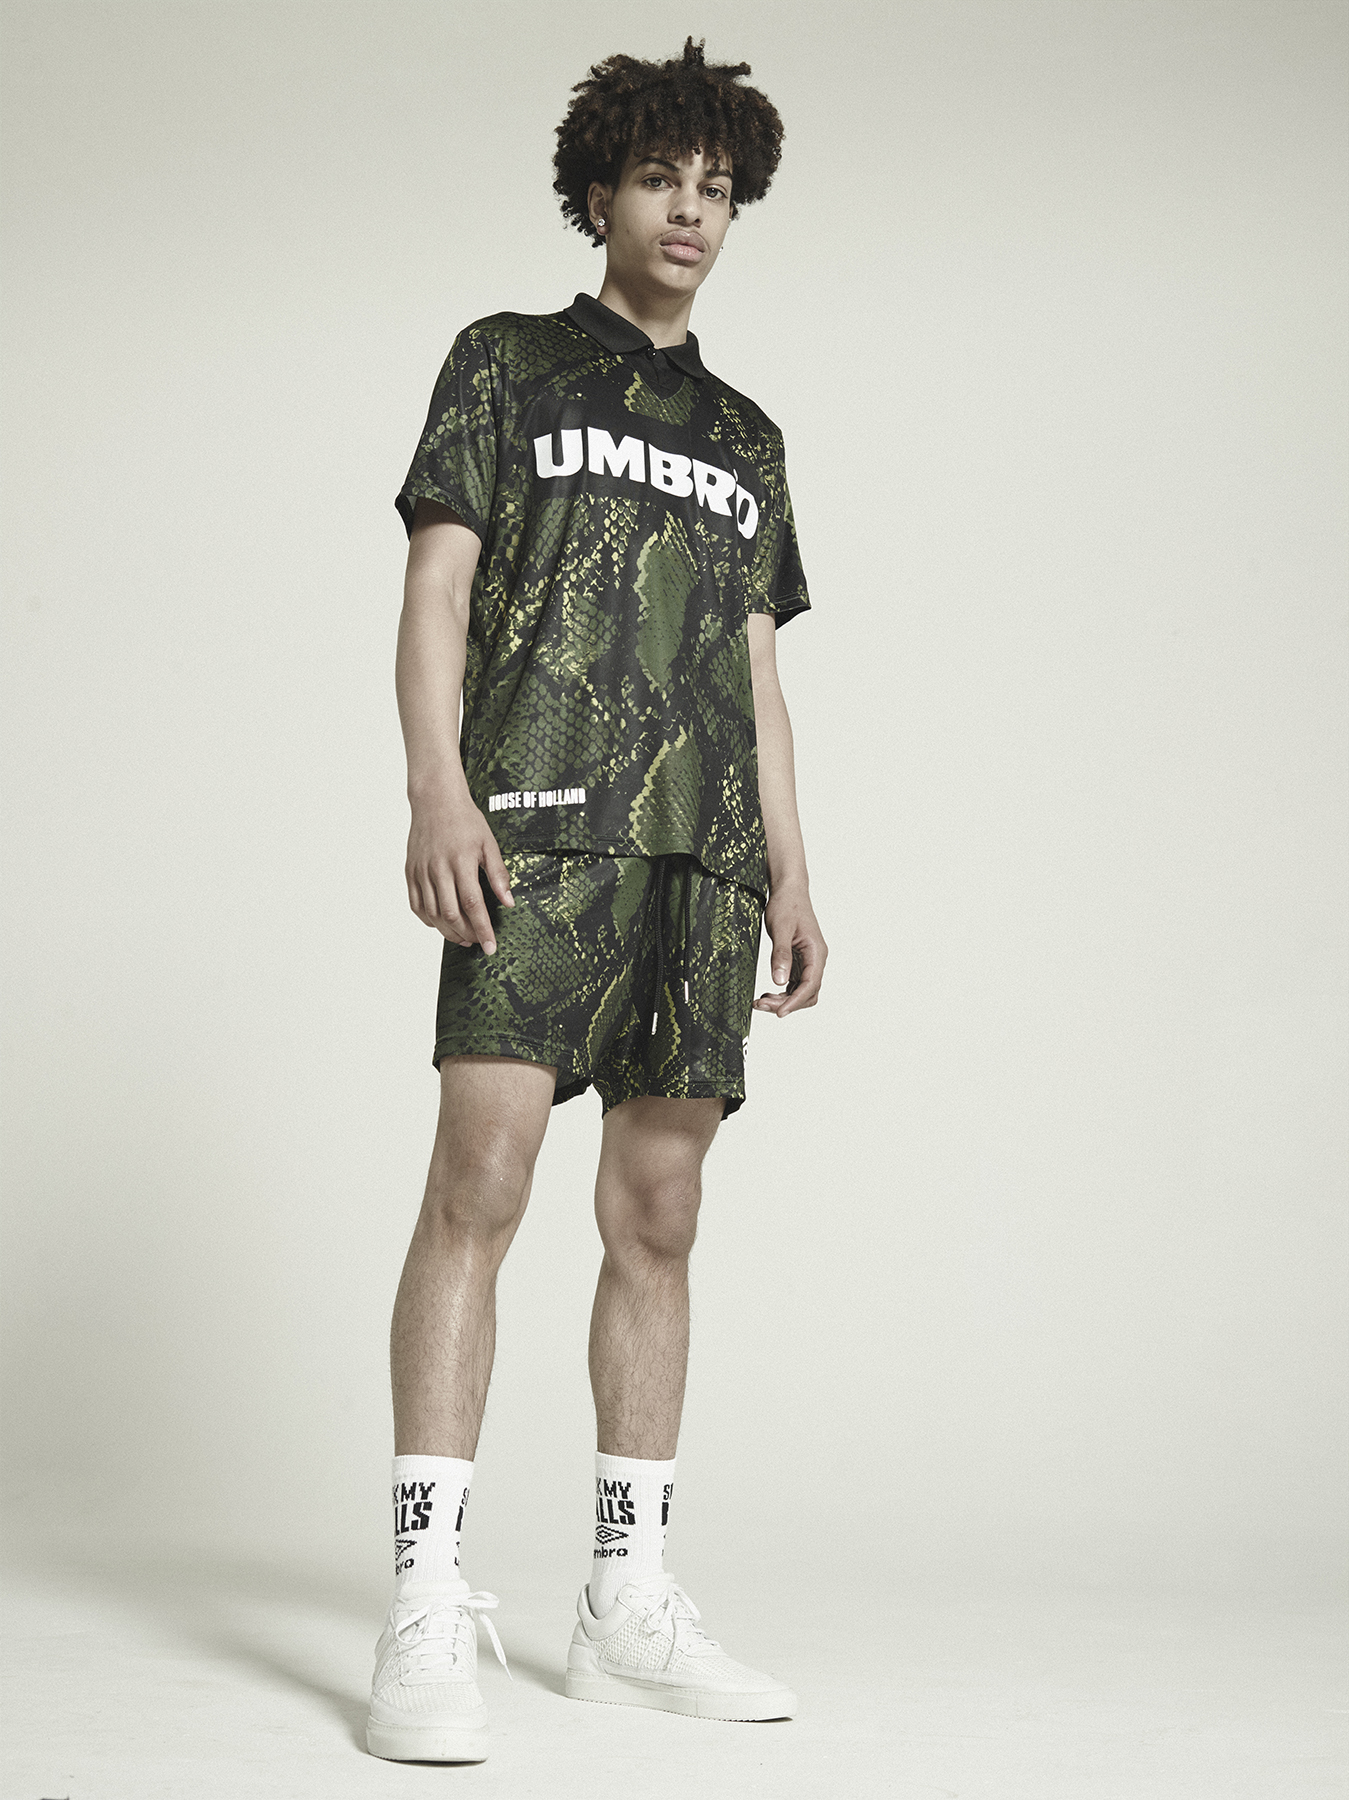 2016_06_29_UMBRO_HOUSE_OF_HOLLAND_LOOKBOOK_SHOT_05_010